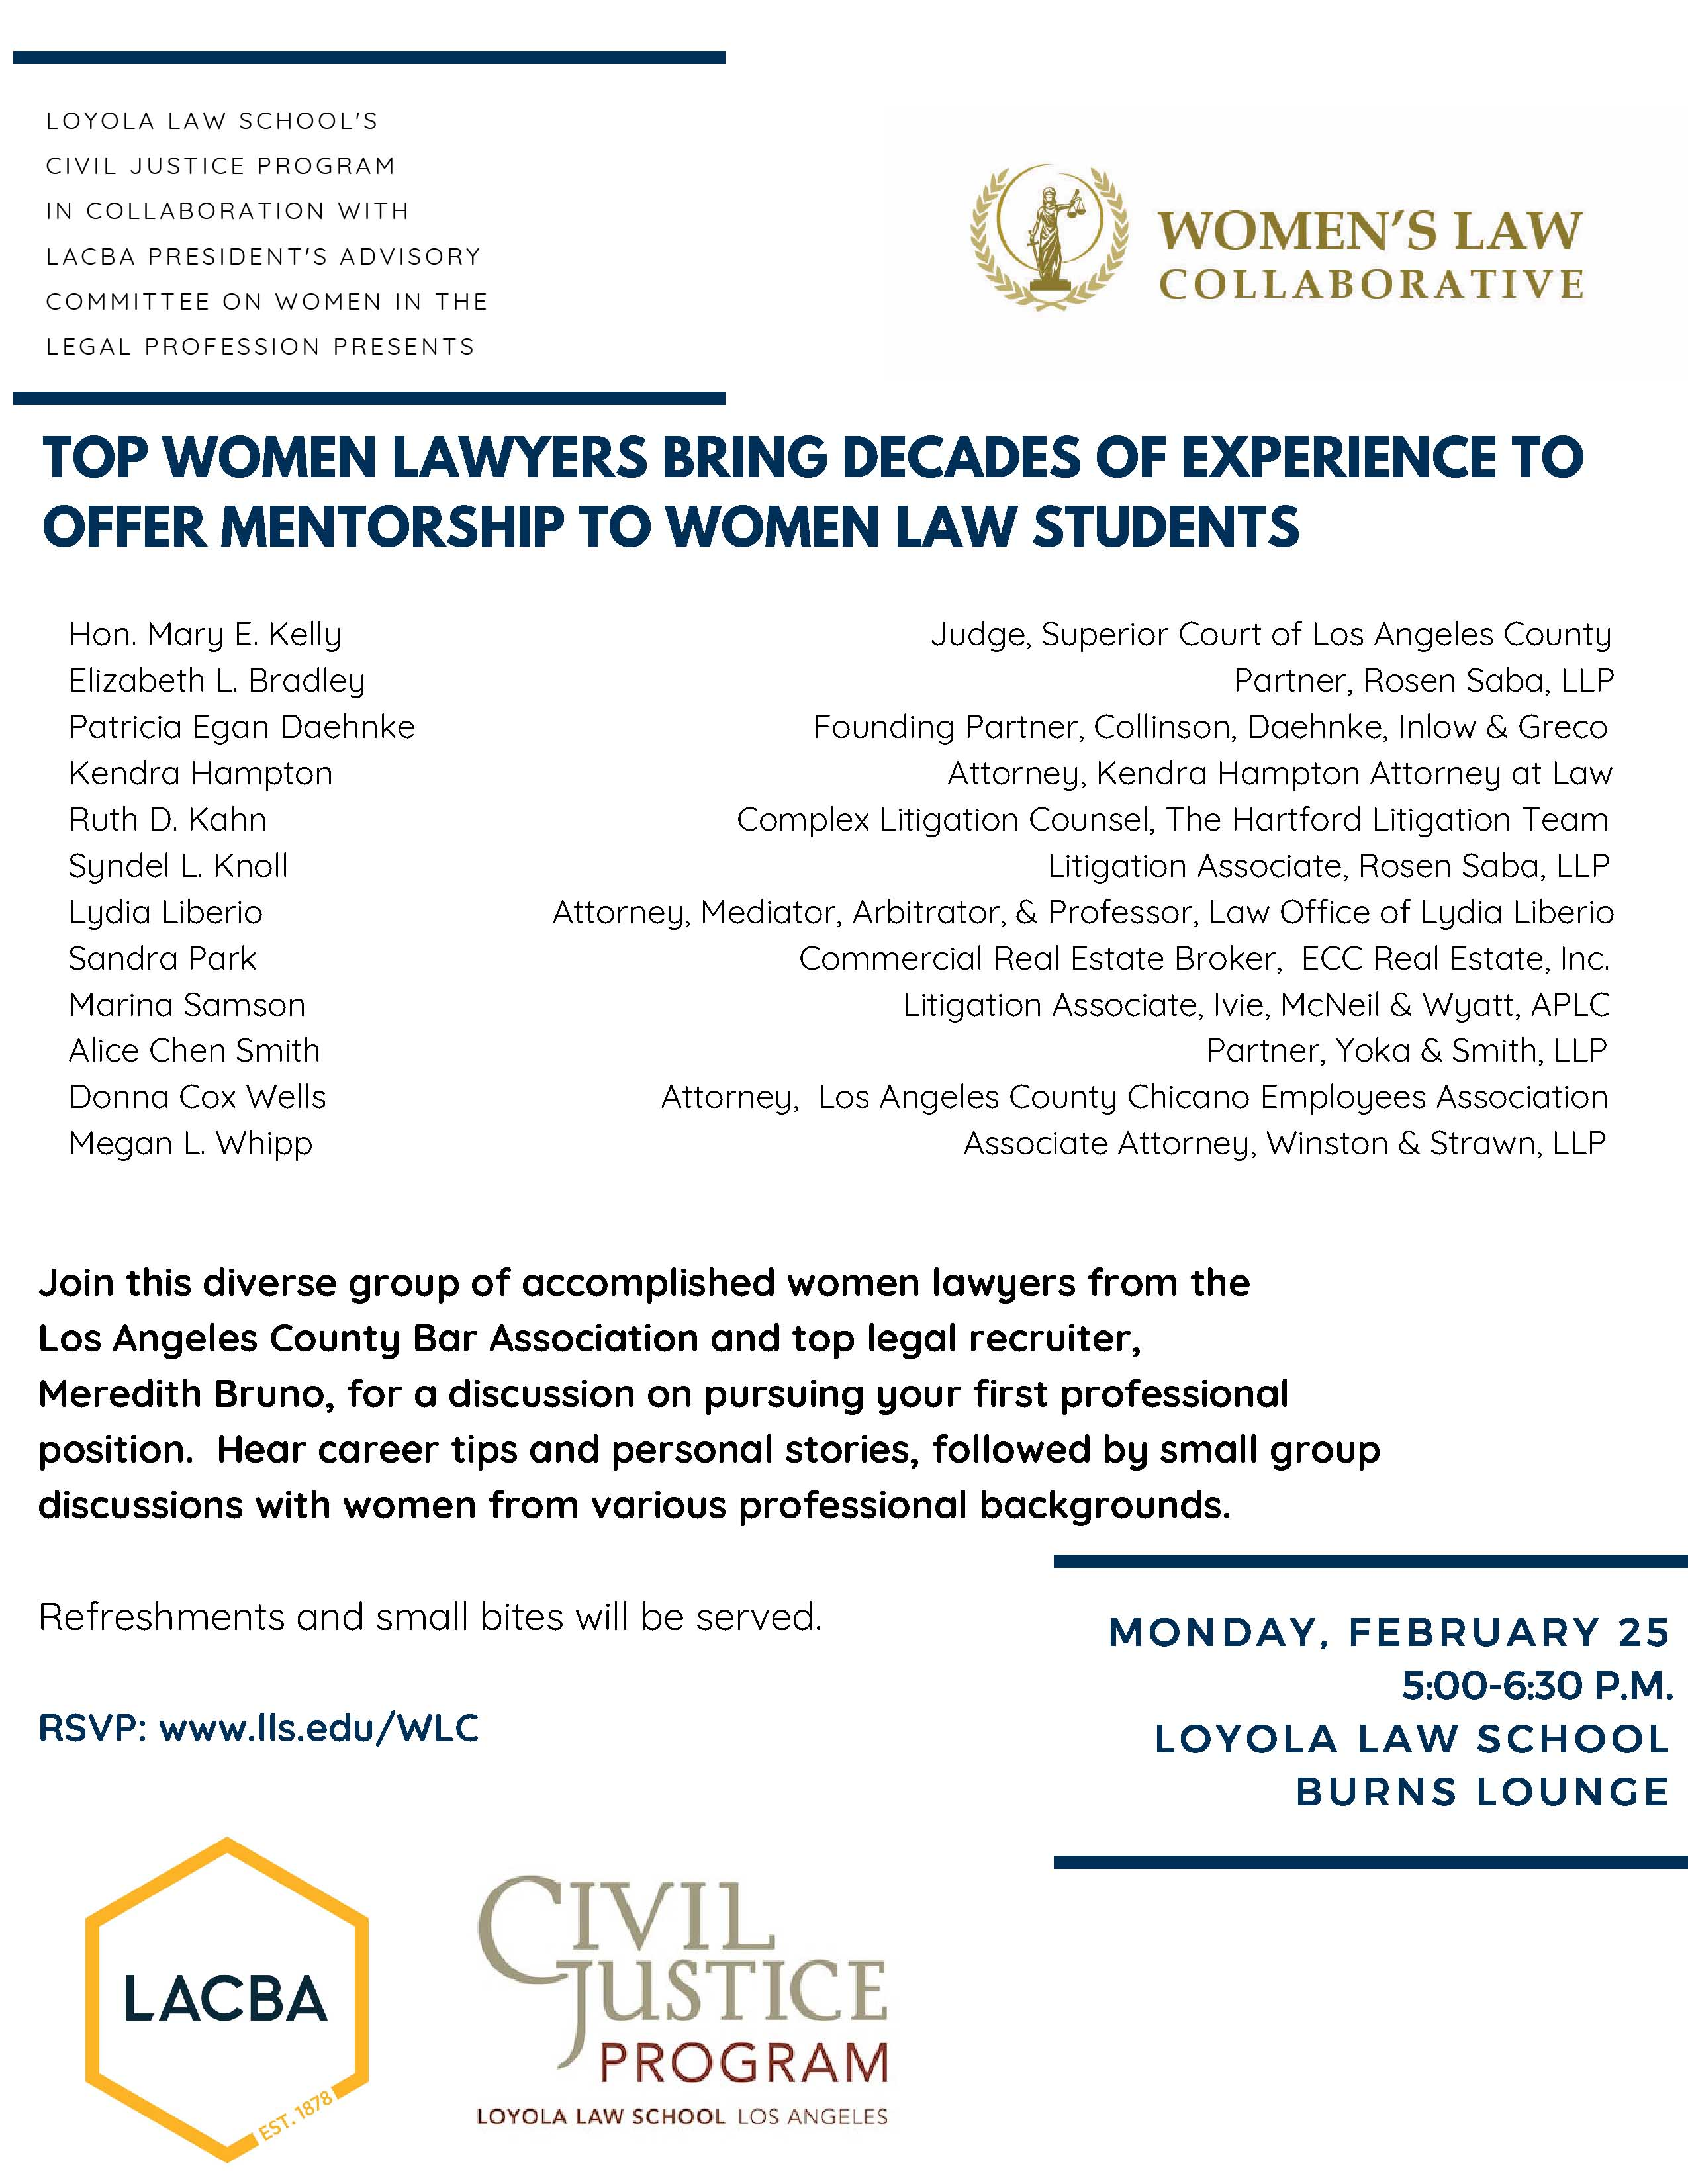 President's Advisory Committee on Women in the Legal Profession Event Flyer